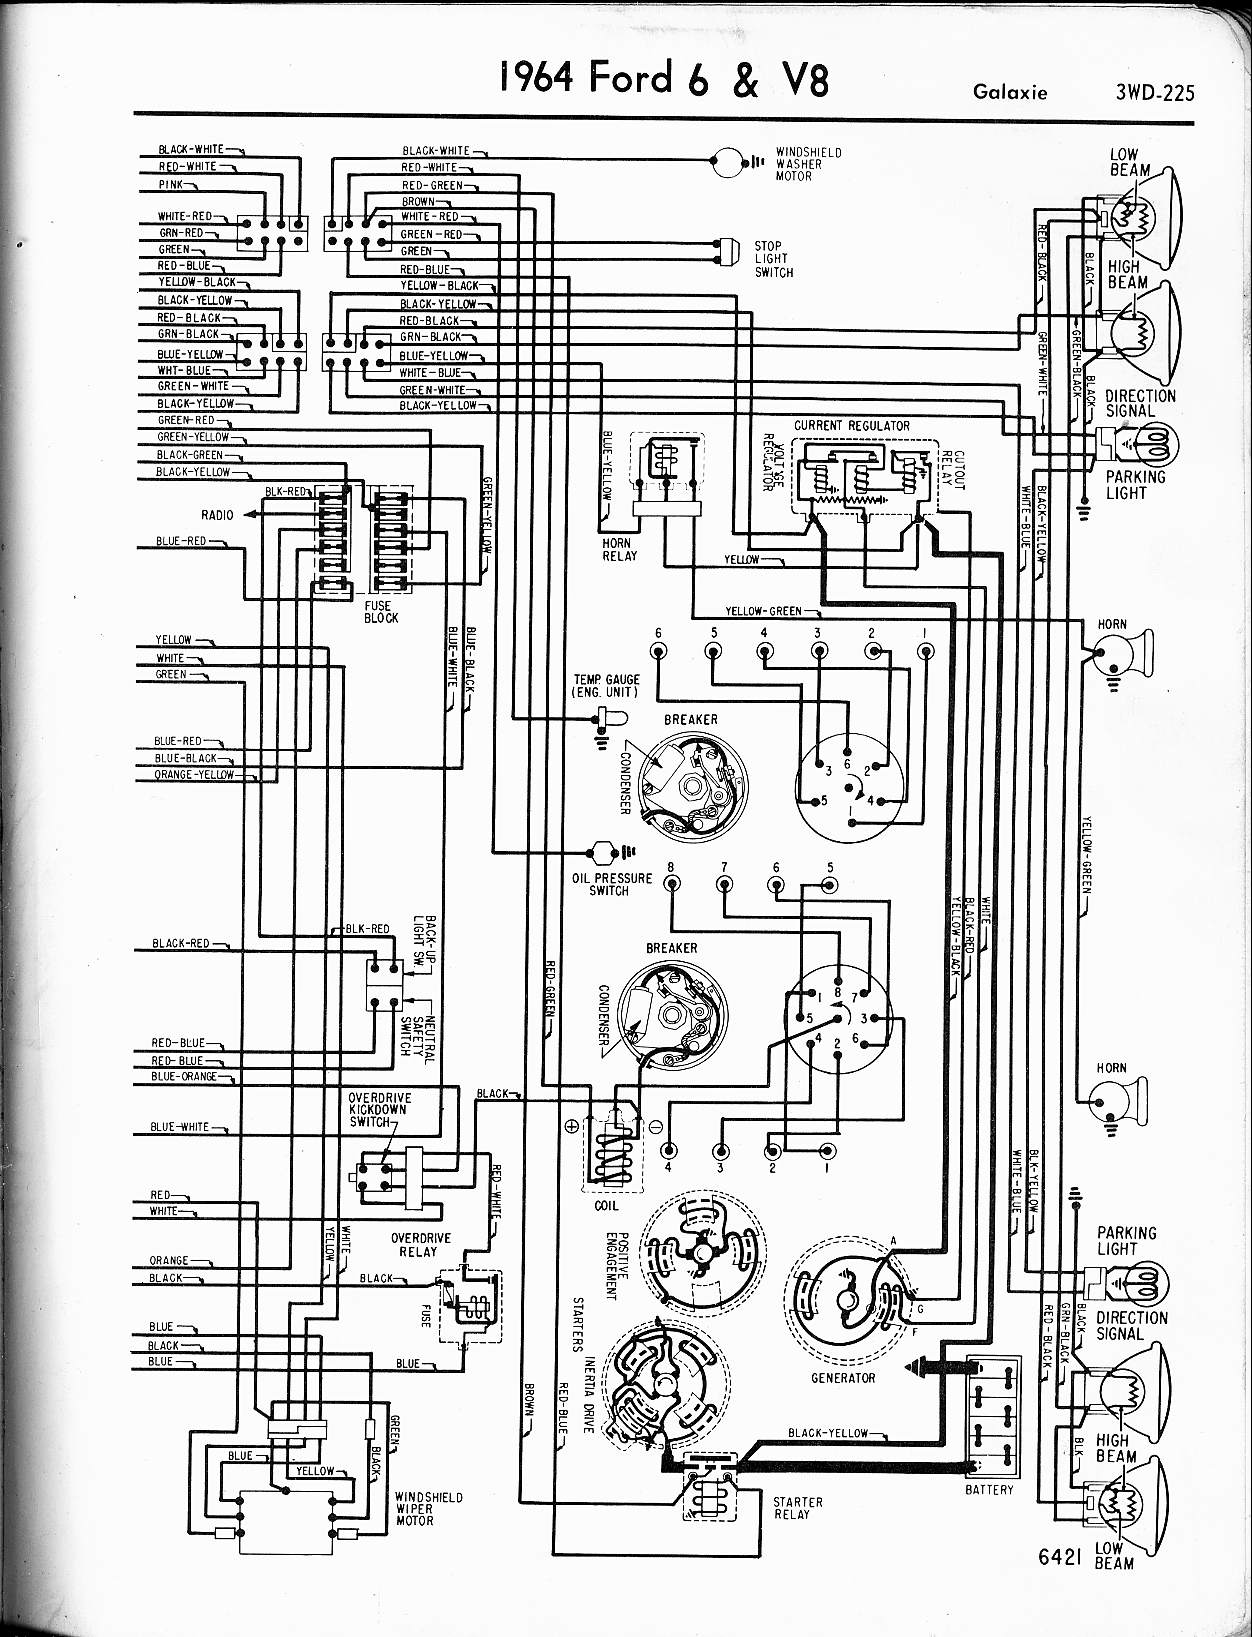 1964 ford wire harness most exciting wiring diagram1964 ford wiring diagram wiring diagram forward 1964 ford wire harness